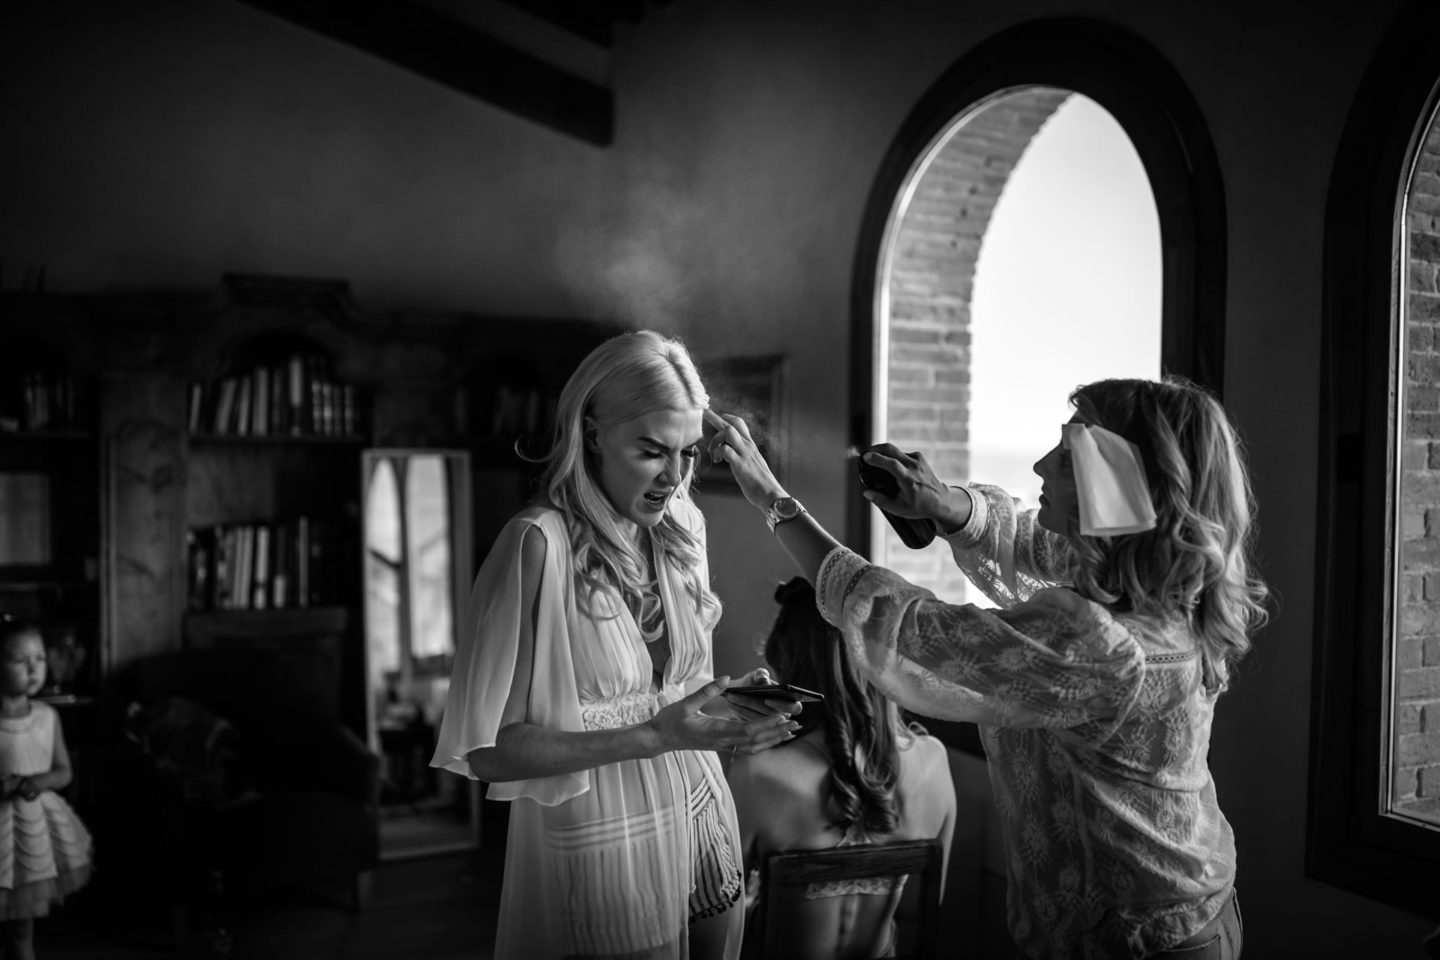 Hairs - 8 :: Exciting wedding in the countryside of Siena :: Luxury wedding photography - 7 :: Hairs - 8